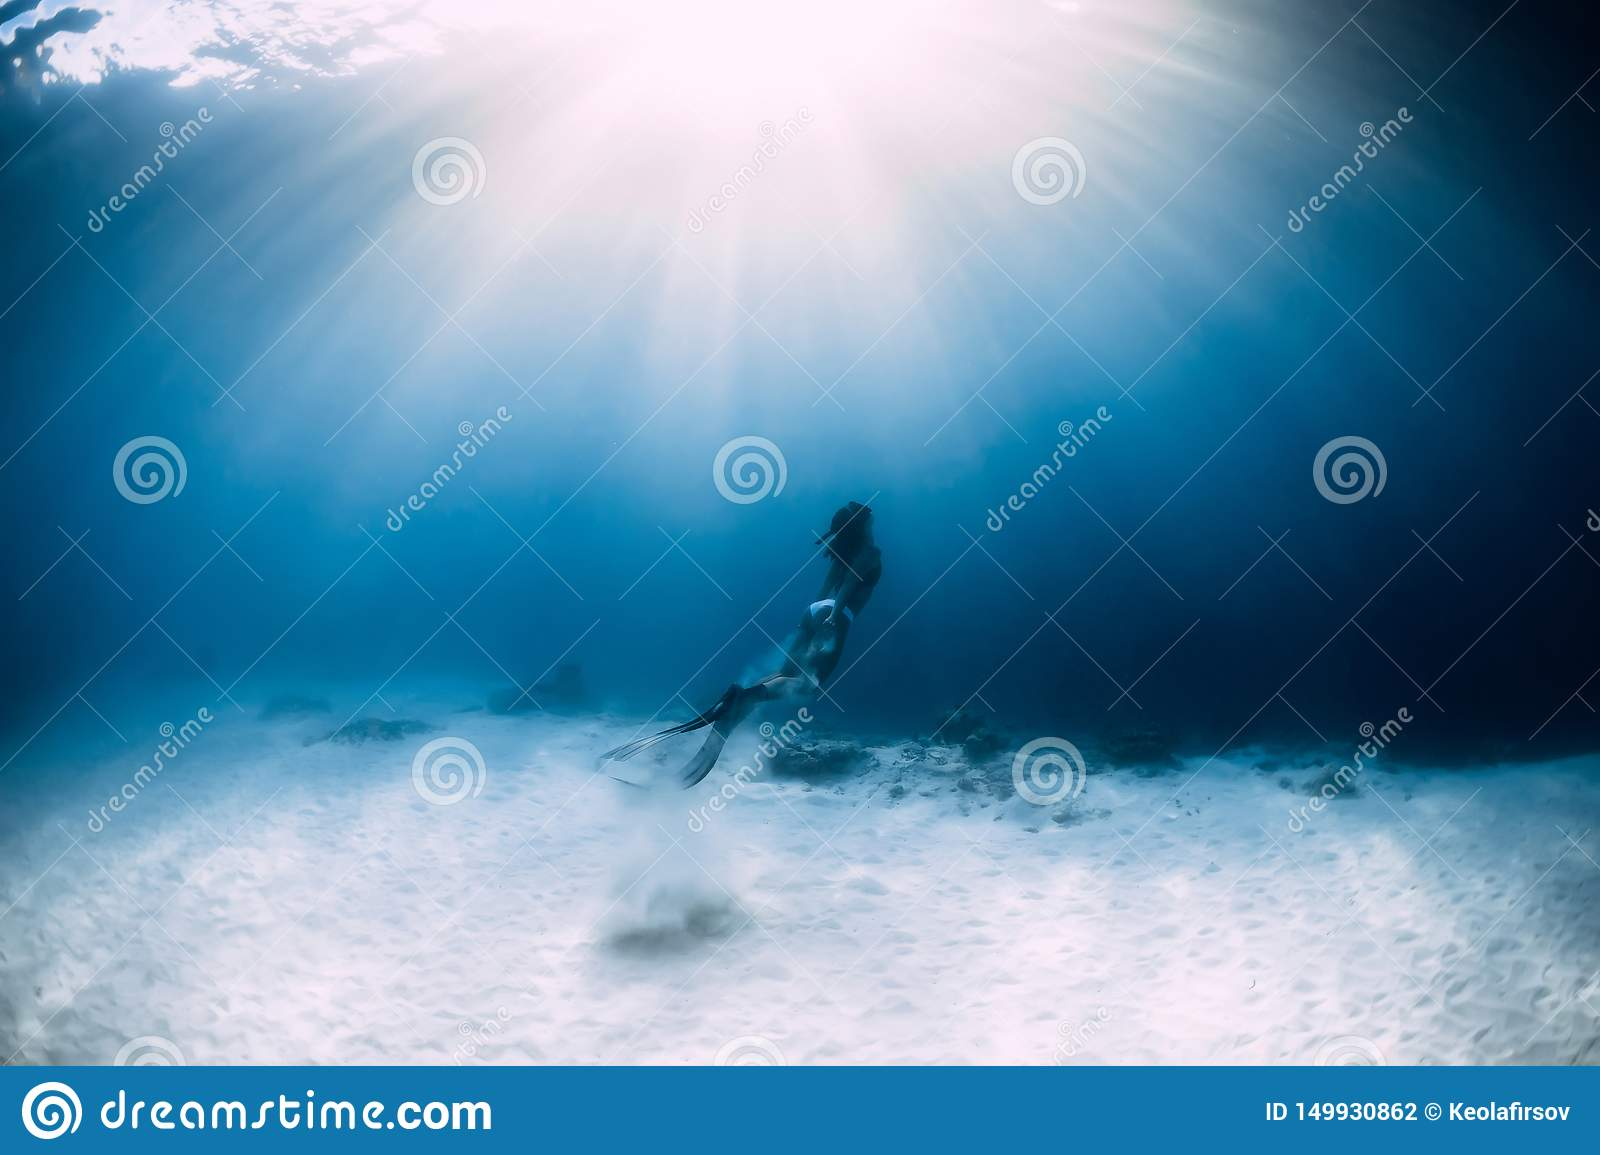 Woman freediver in bikini over sandy sea with fins. Freediving underwater